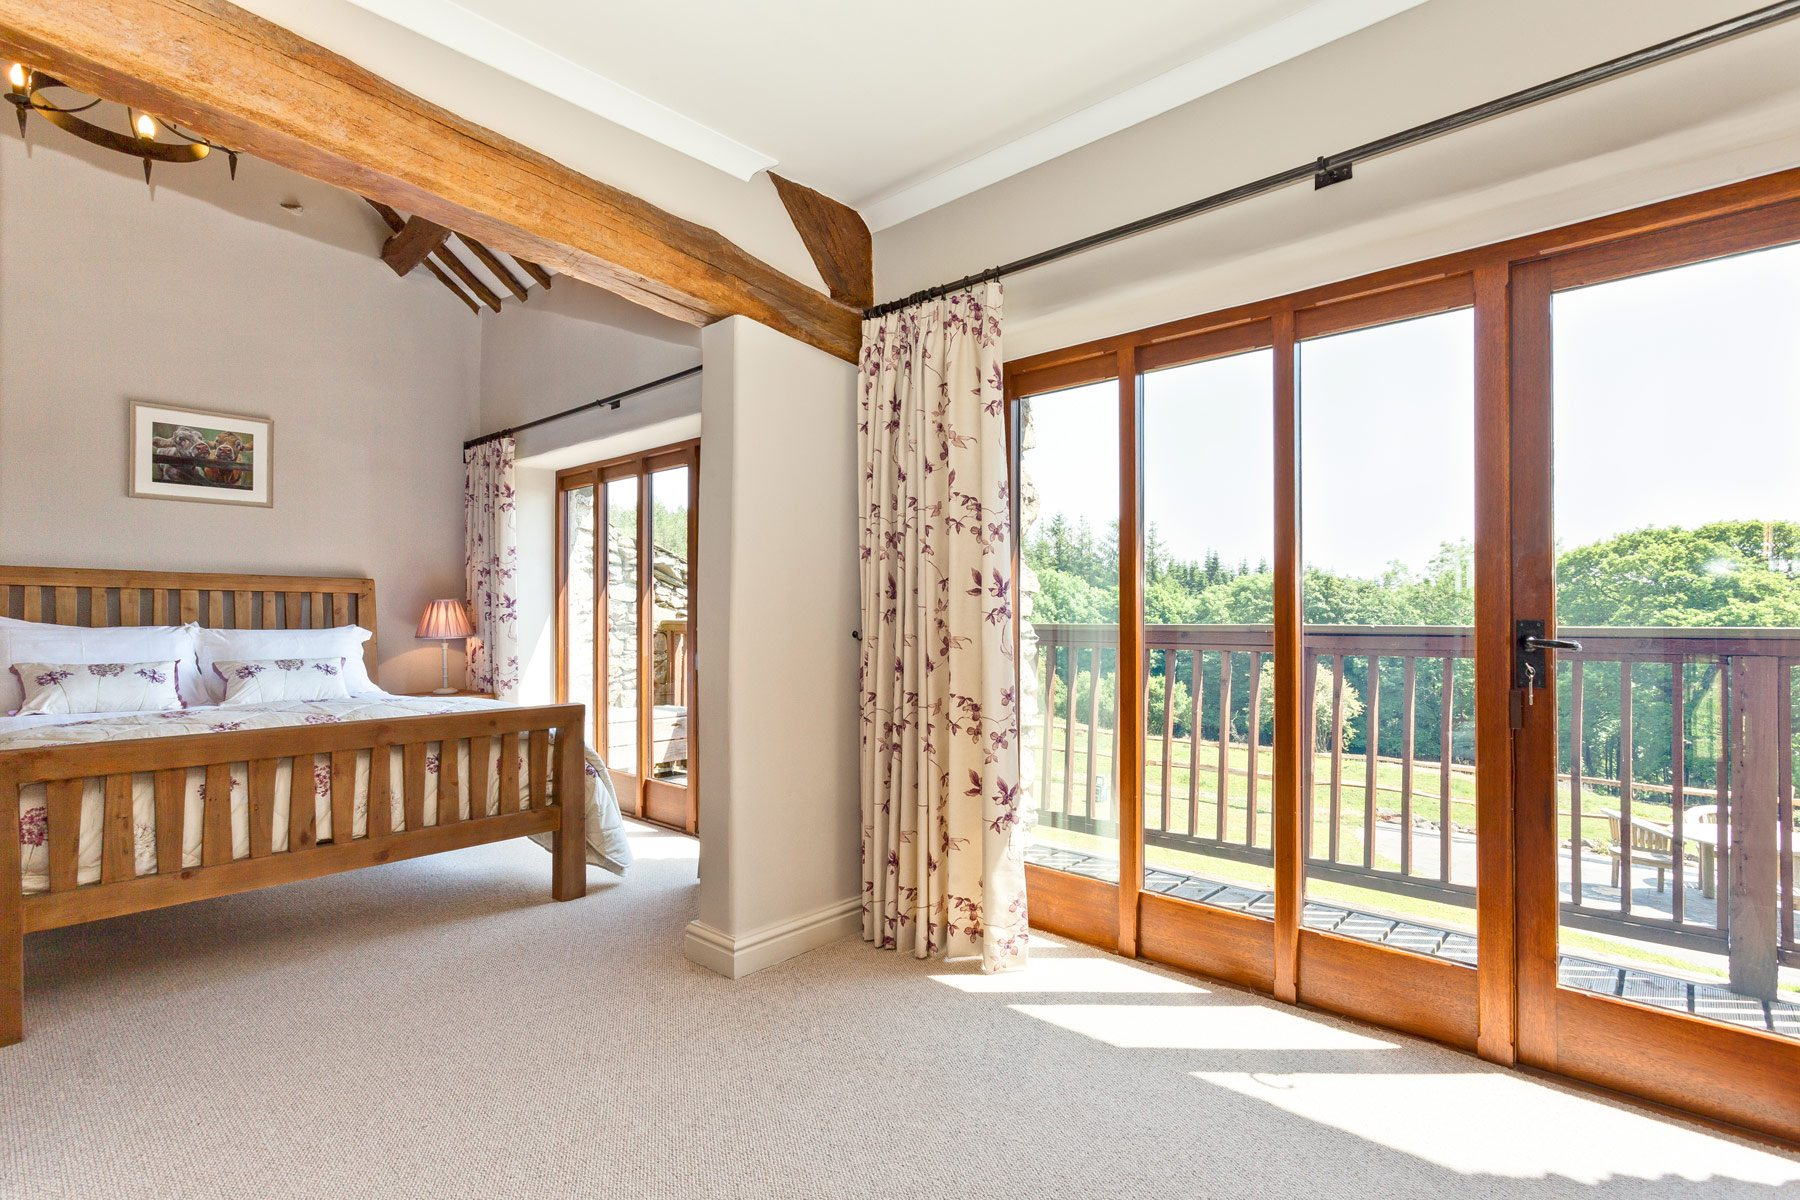 King sized bedroom with a veranda over-looking the fields